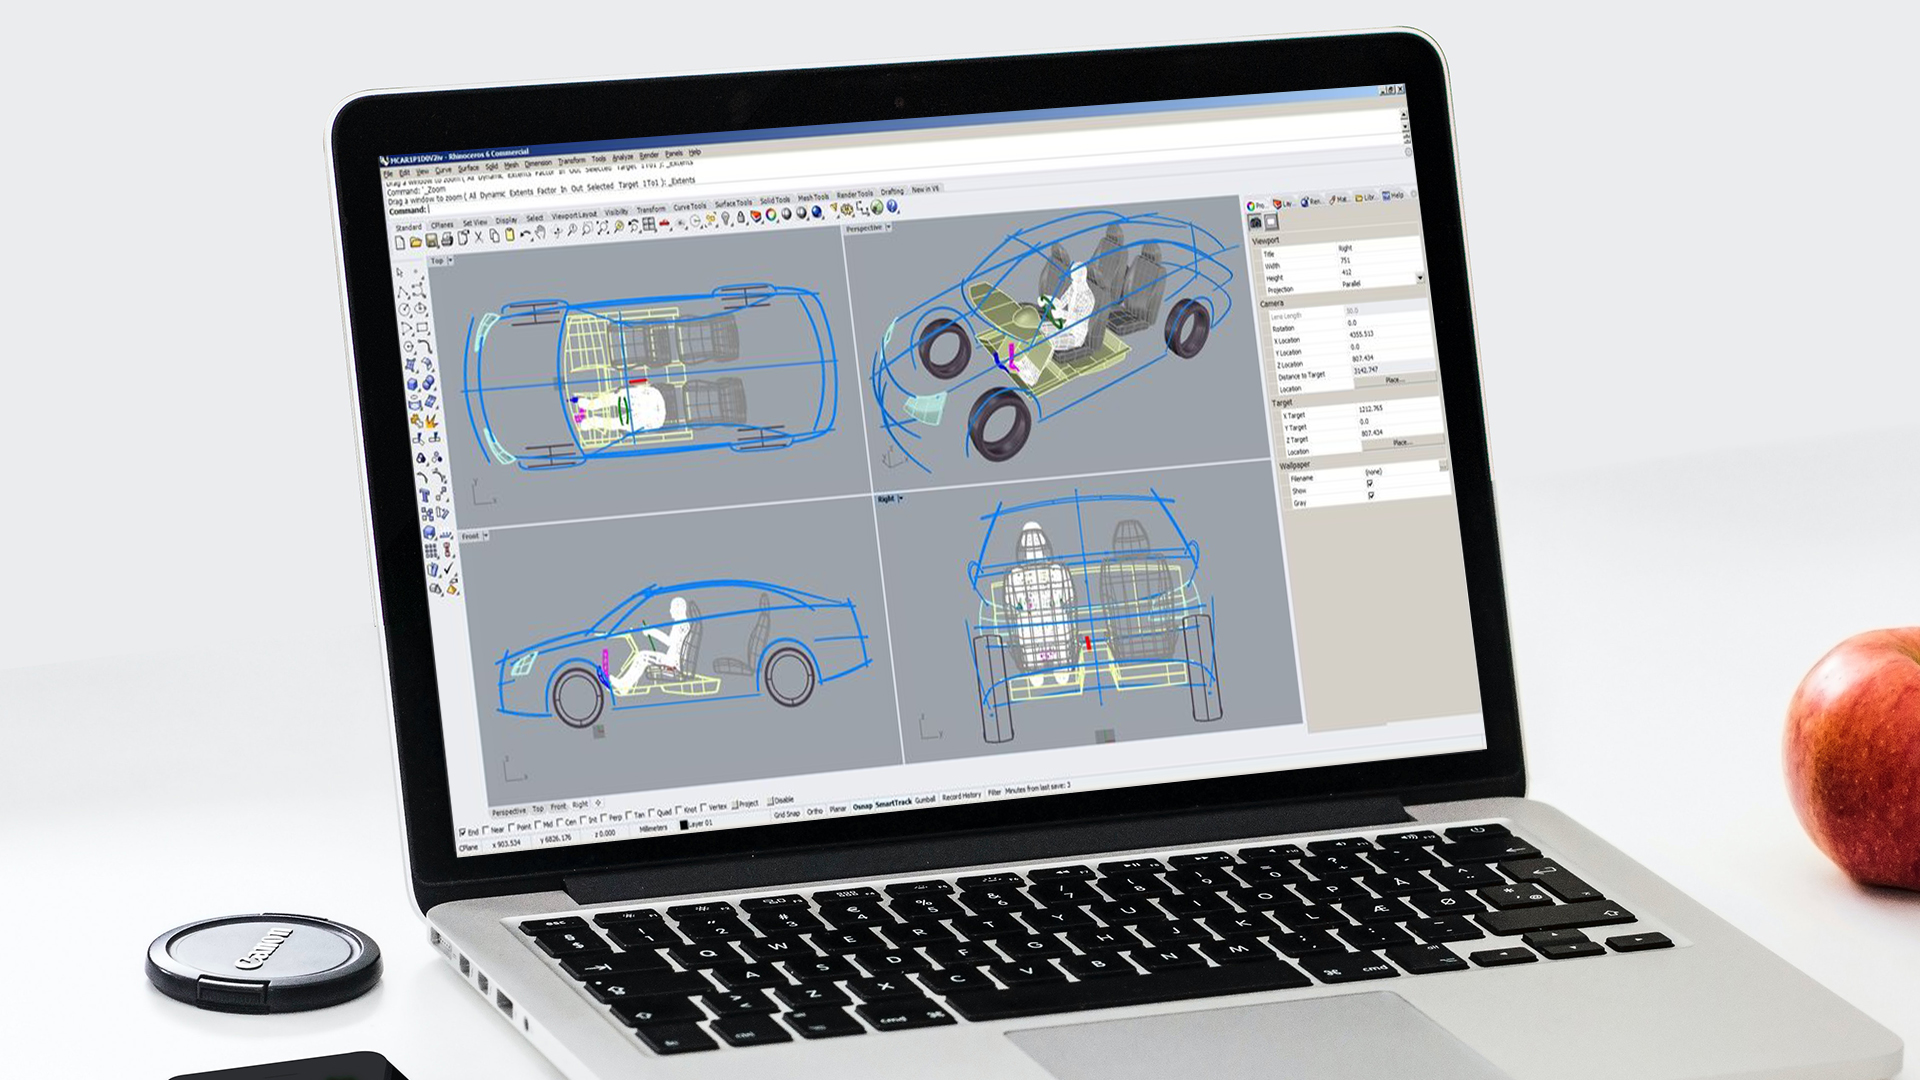 Your newly-bought Japanese car was probably designed via VDI